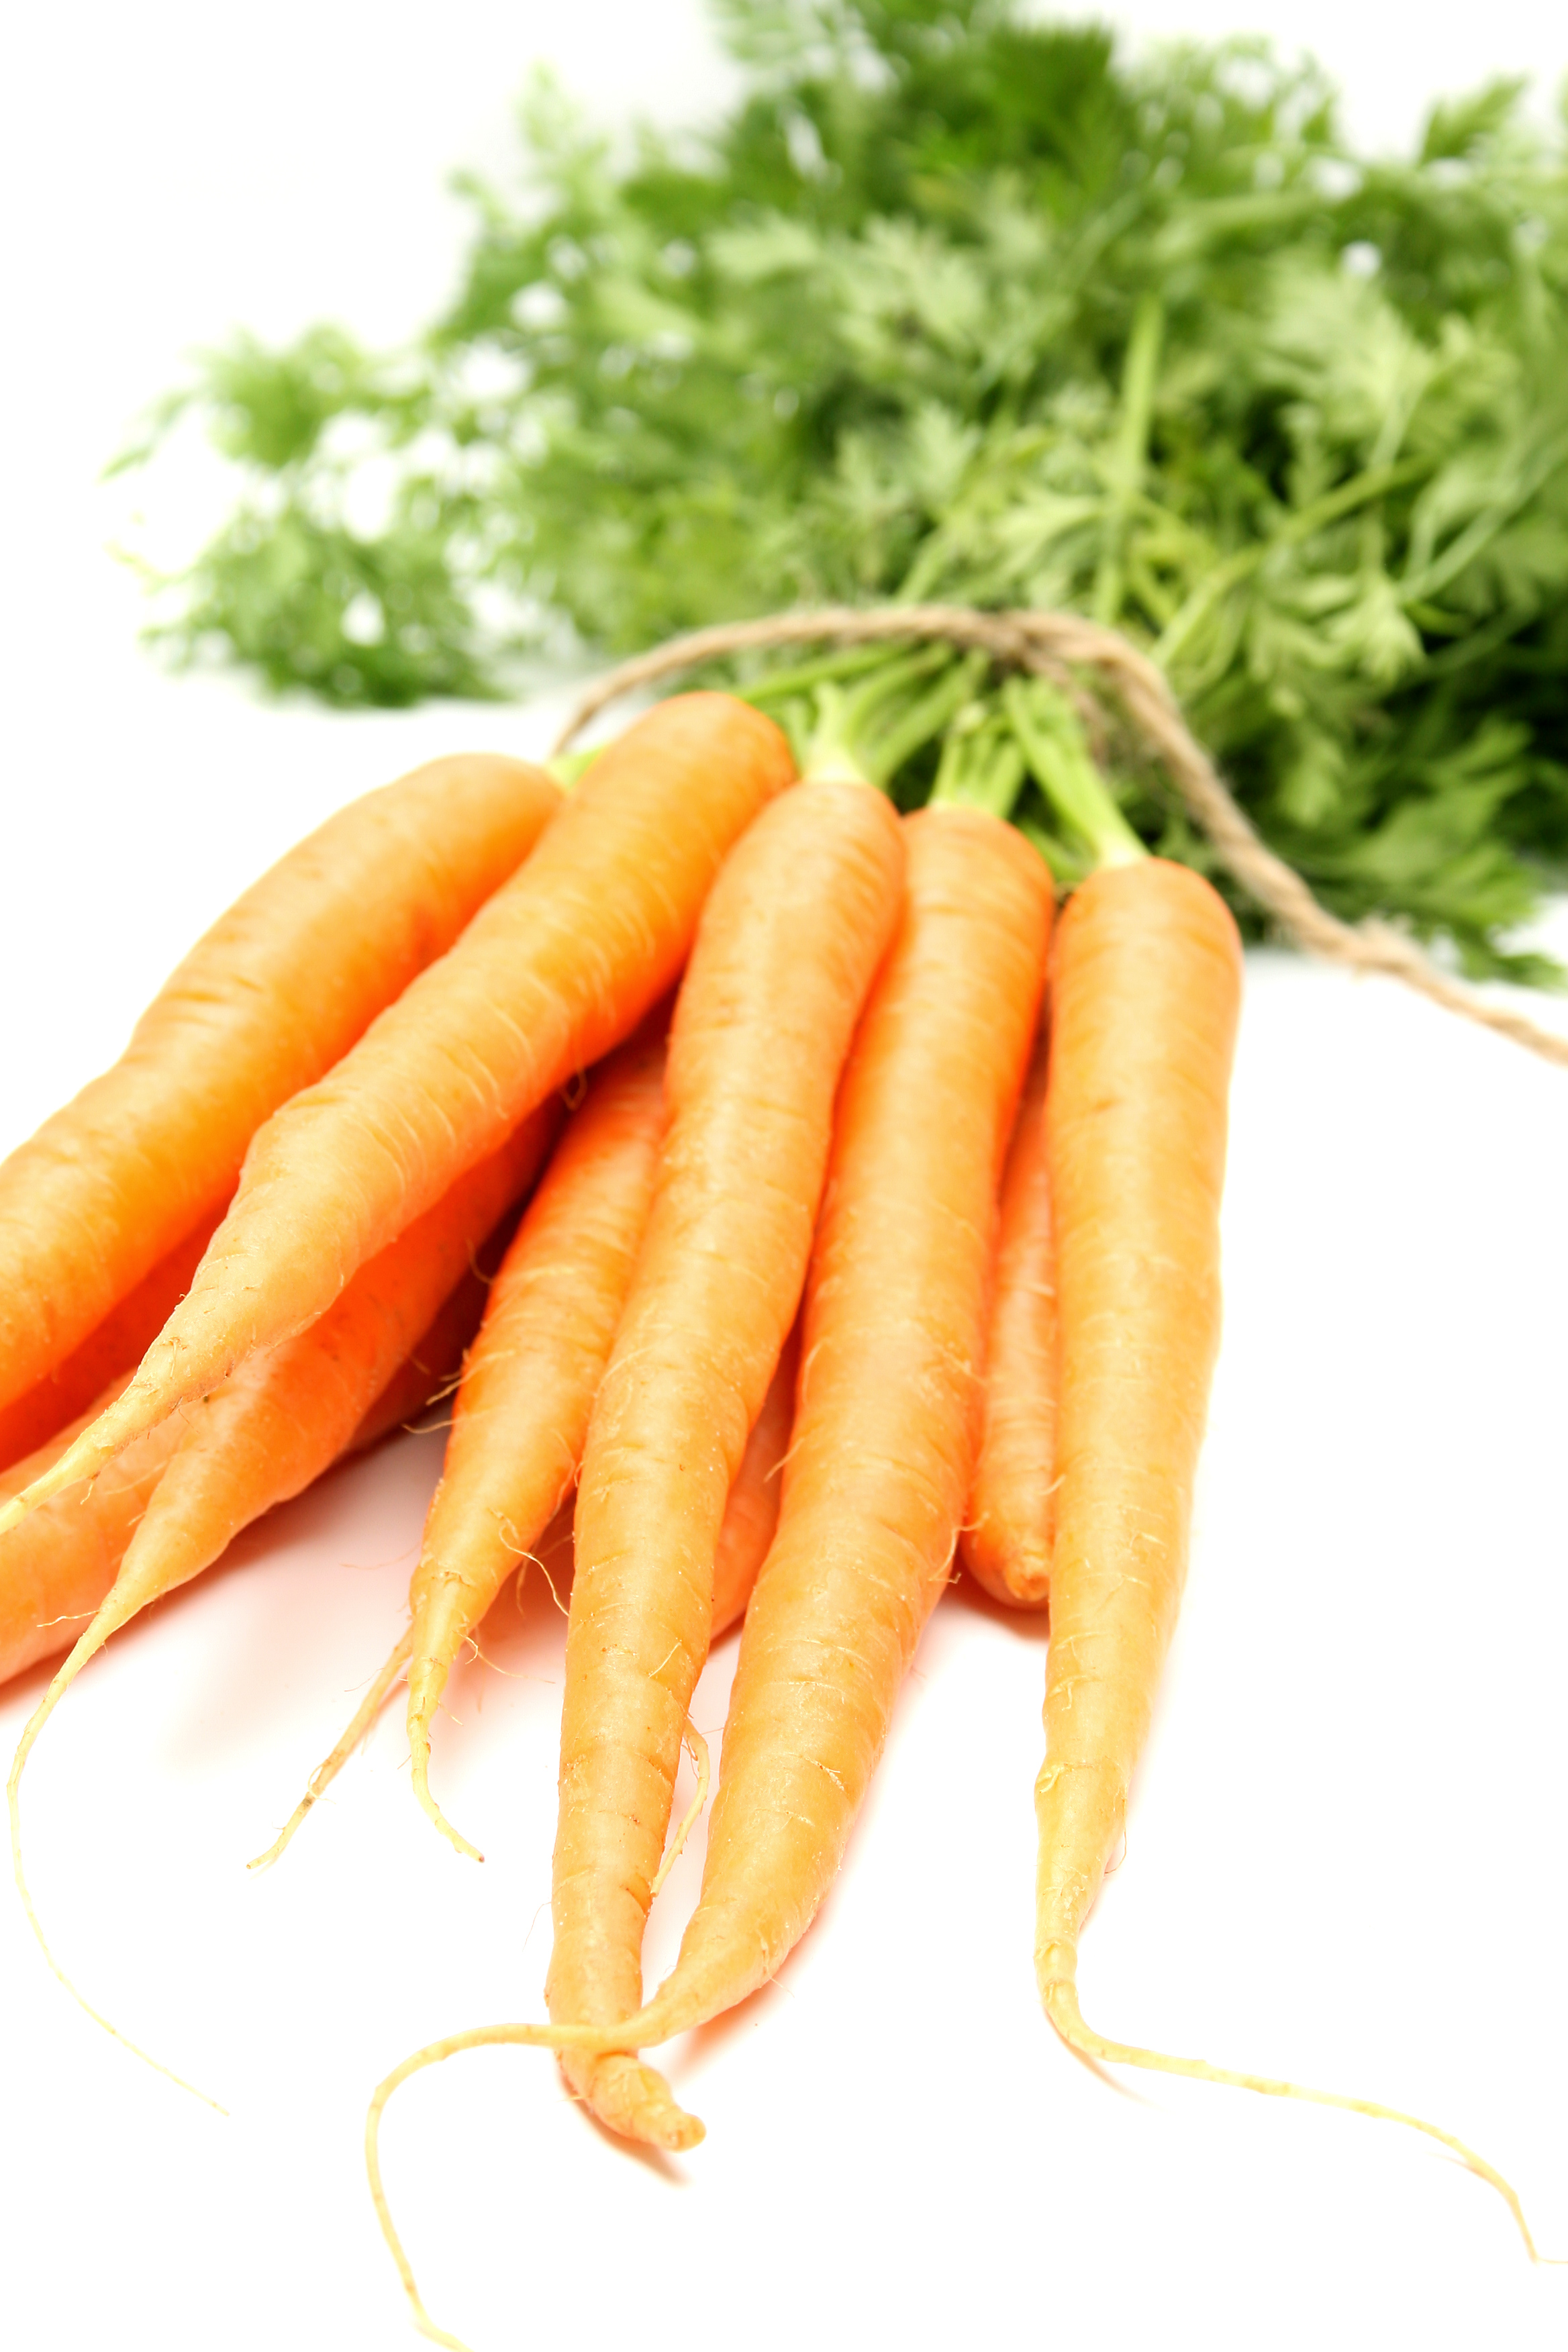 Are carrots good for you? | SkinnyTwinkie